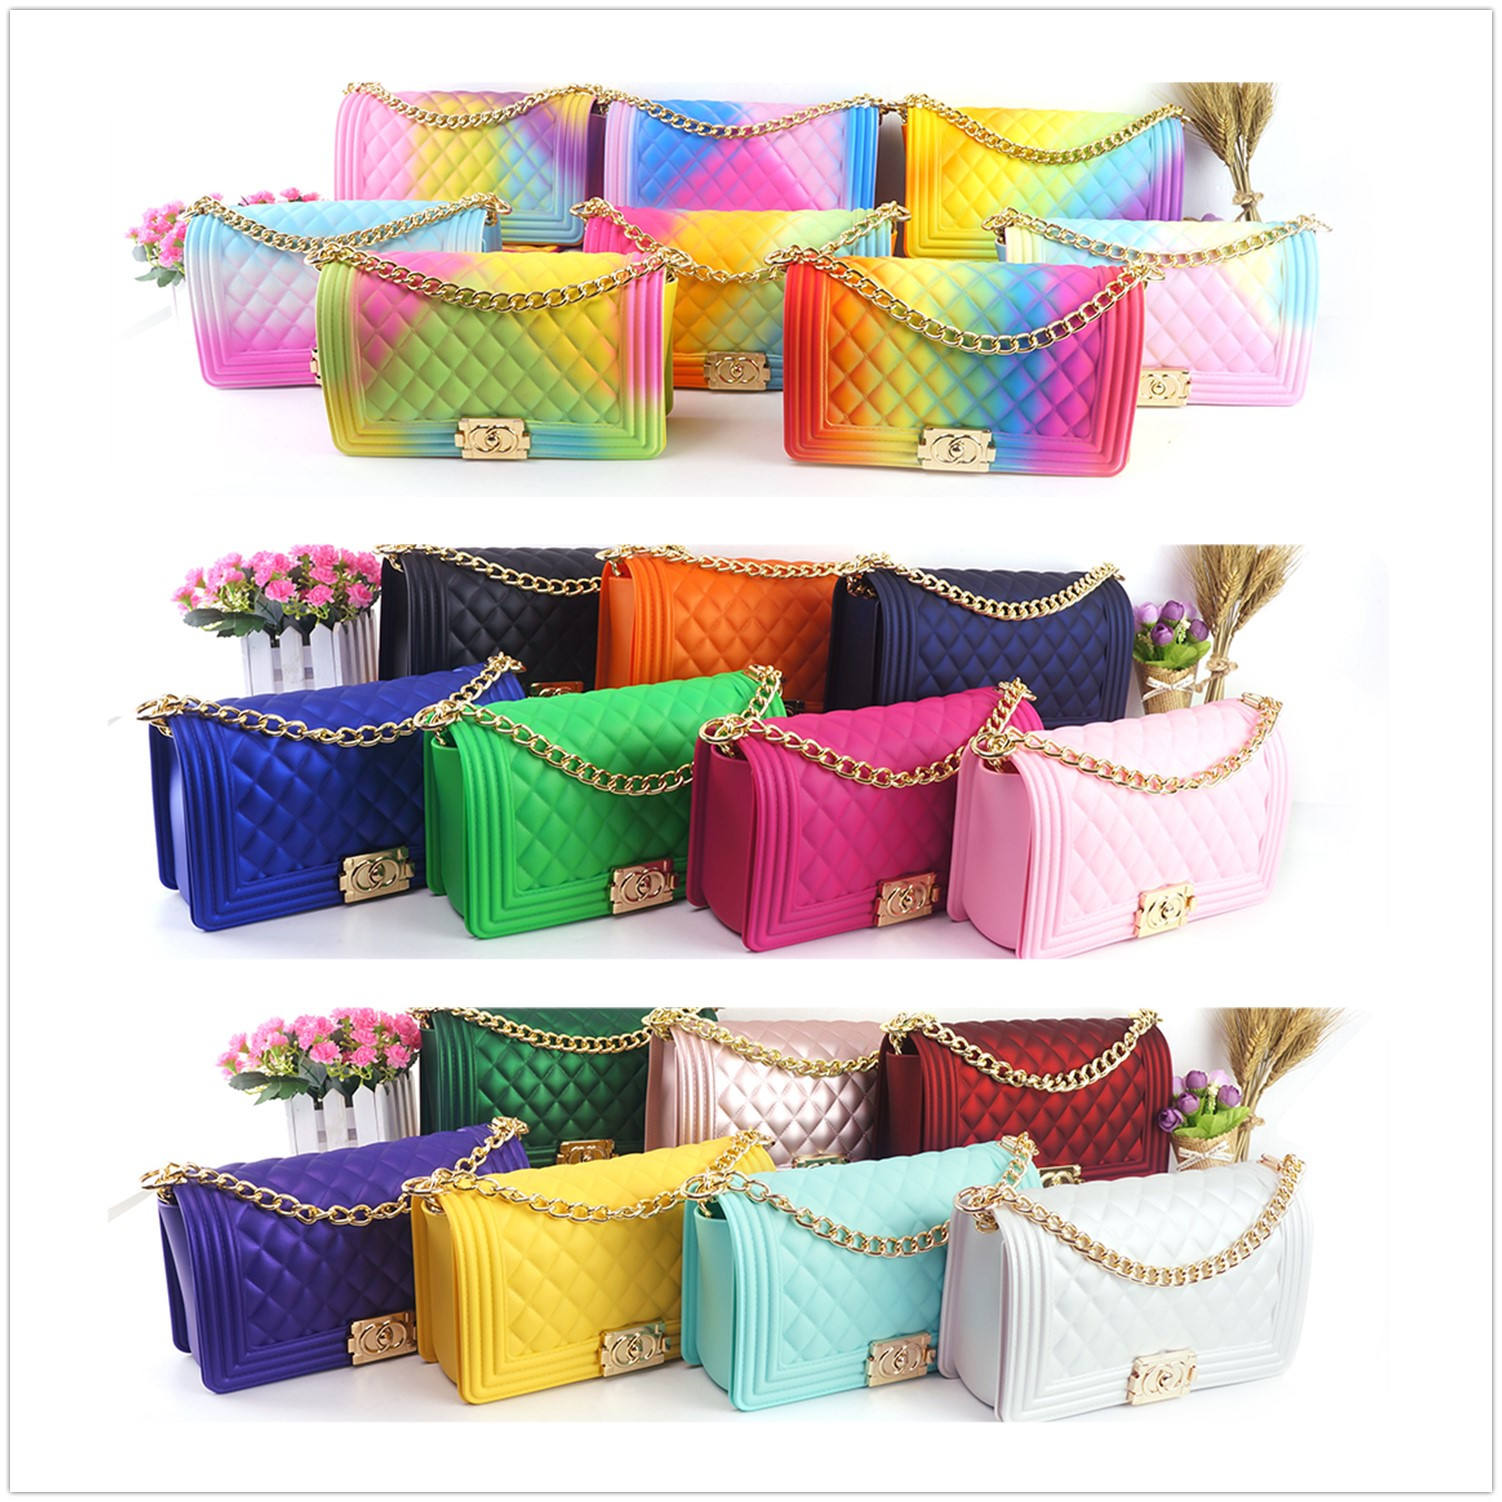 Large Capacity Jelly Purses Jelly bag rainbow color ladies hand bags colorful PVC bag purses and handbags